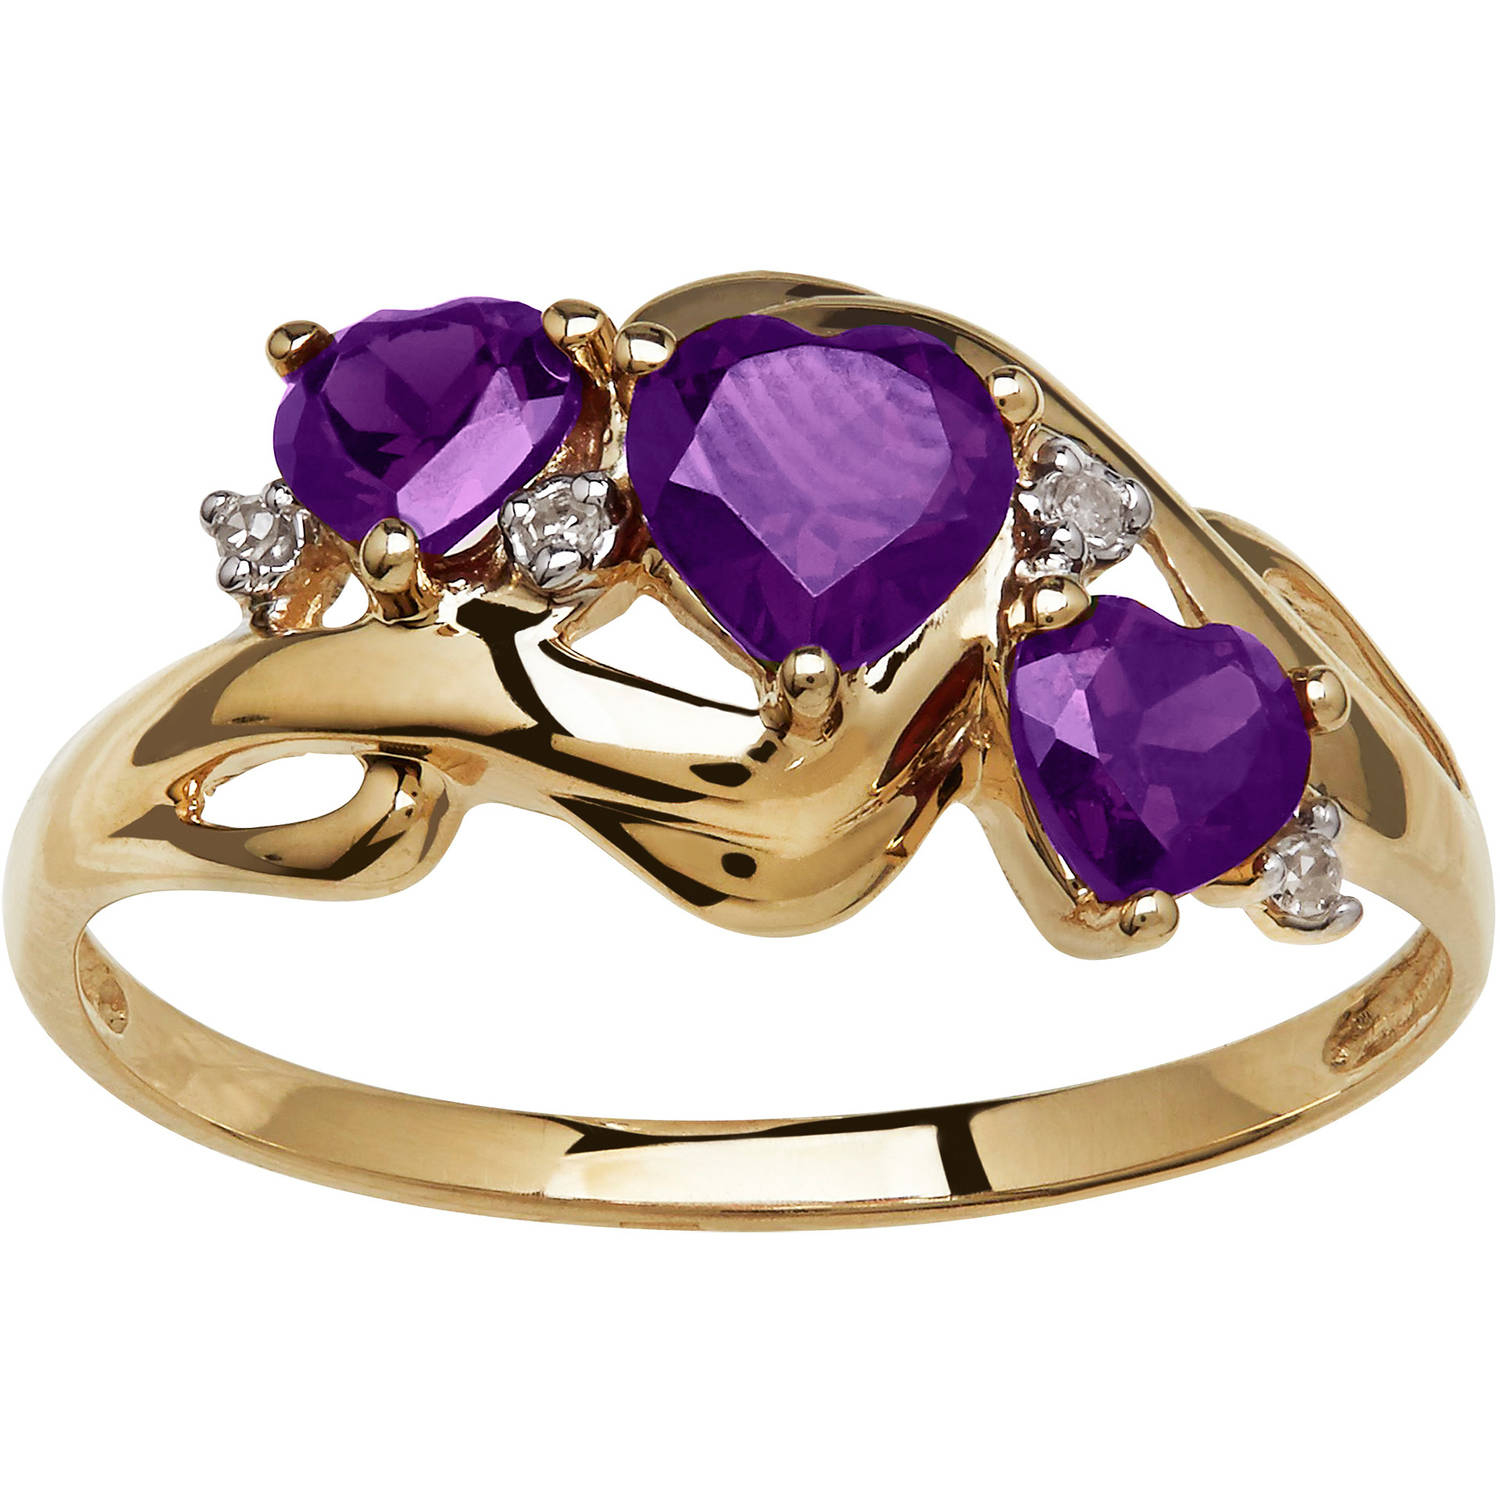 Amethyst and Diamond Accent 10kt Yellow Gold Ring, Size 7